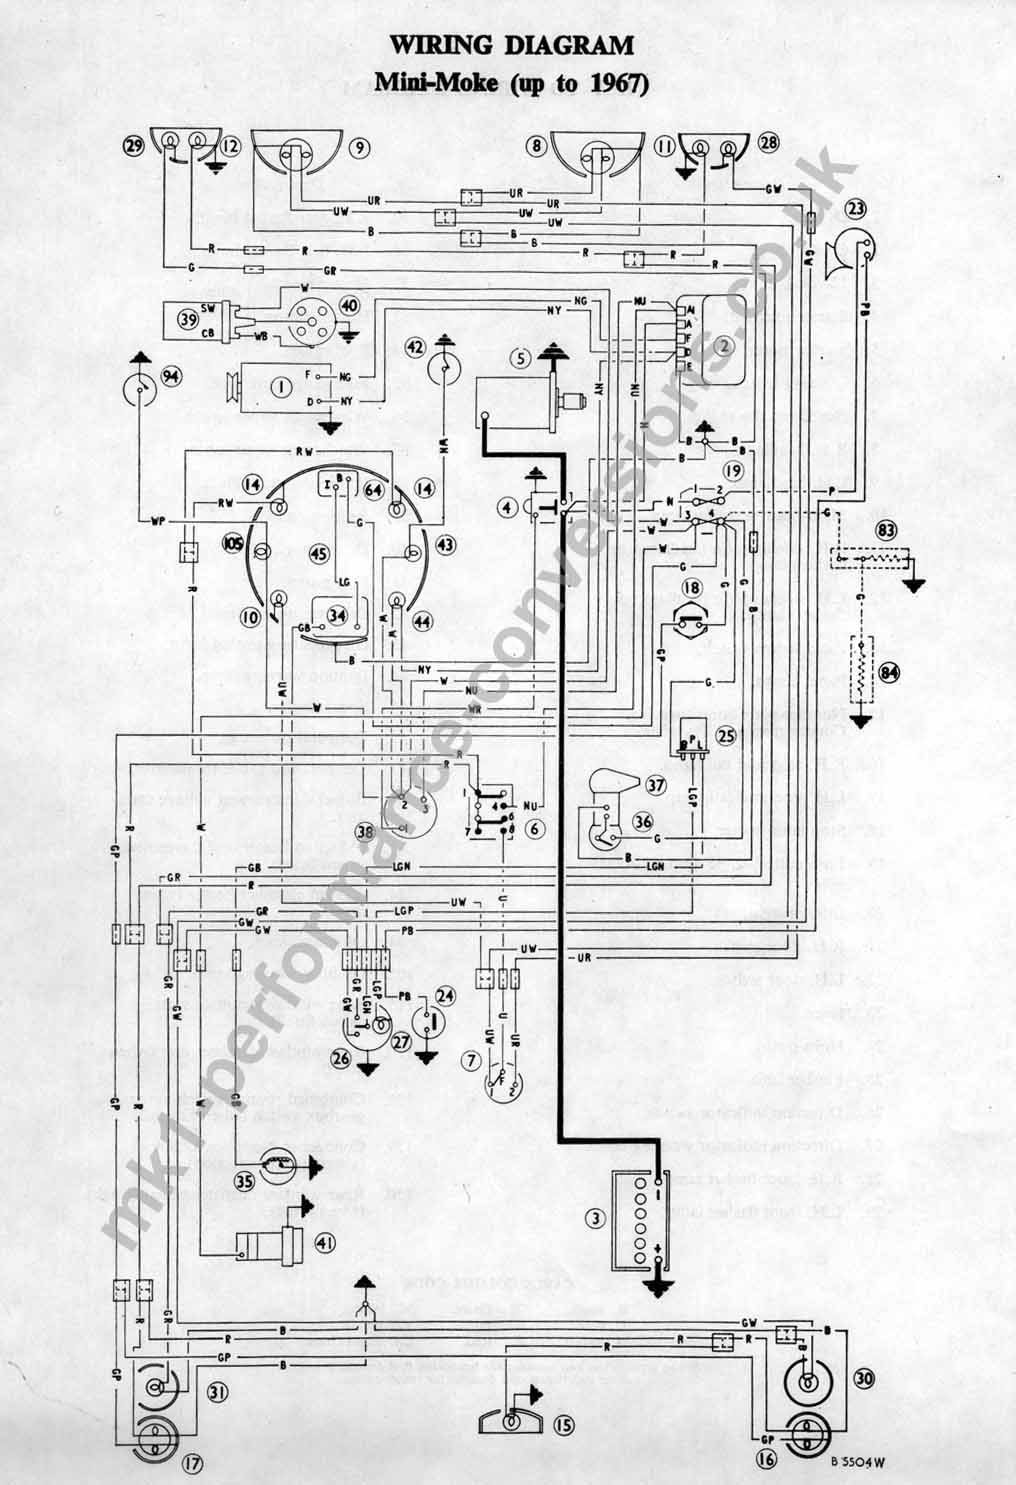 mk1_moke_wiring technical (electrical) escort mk1 wiring diagram at creativeand.co